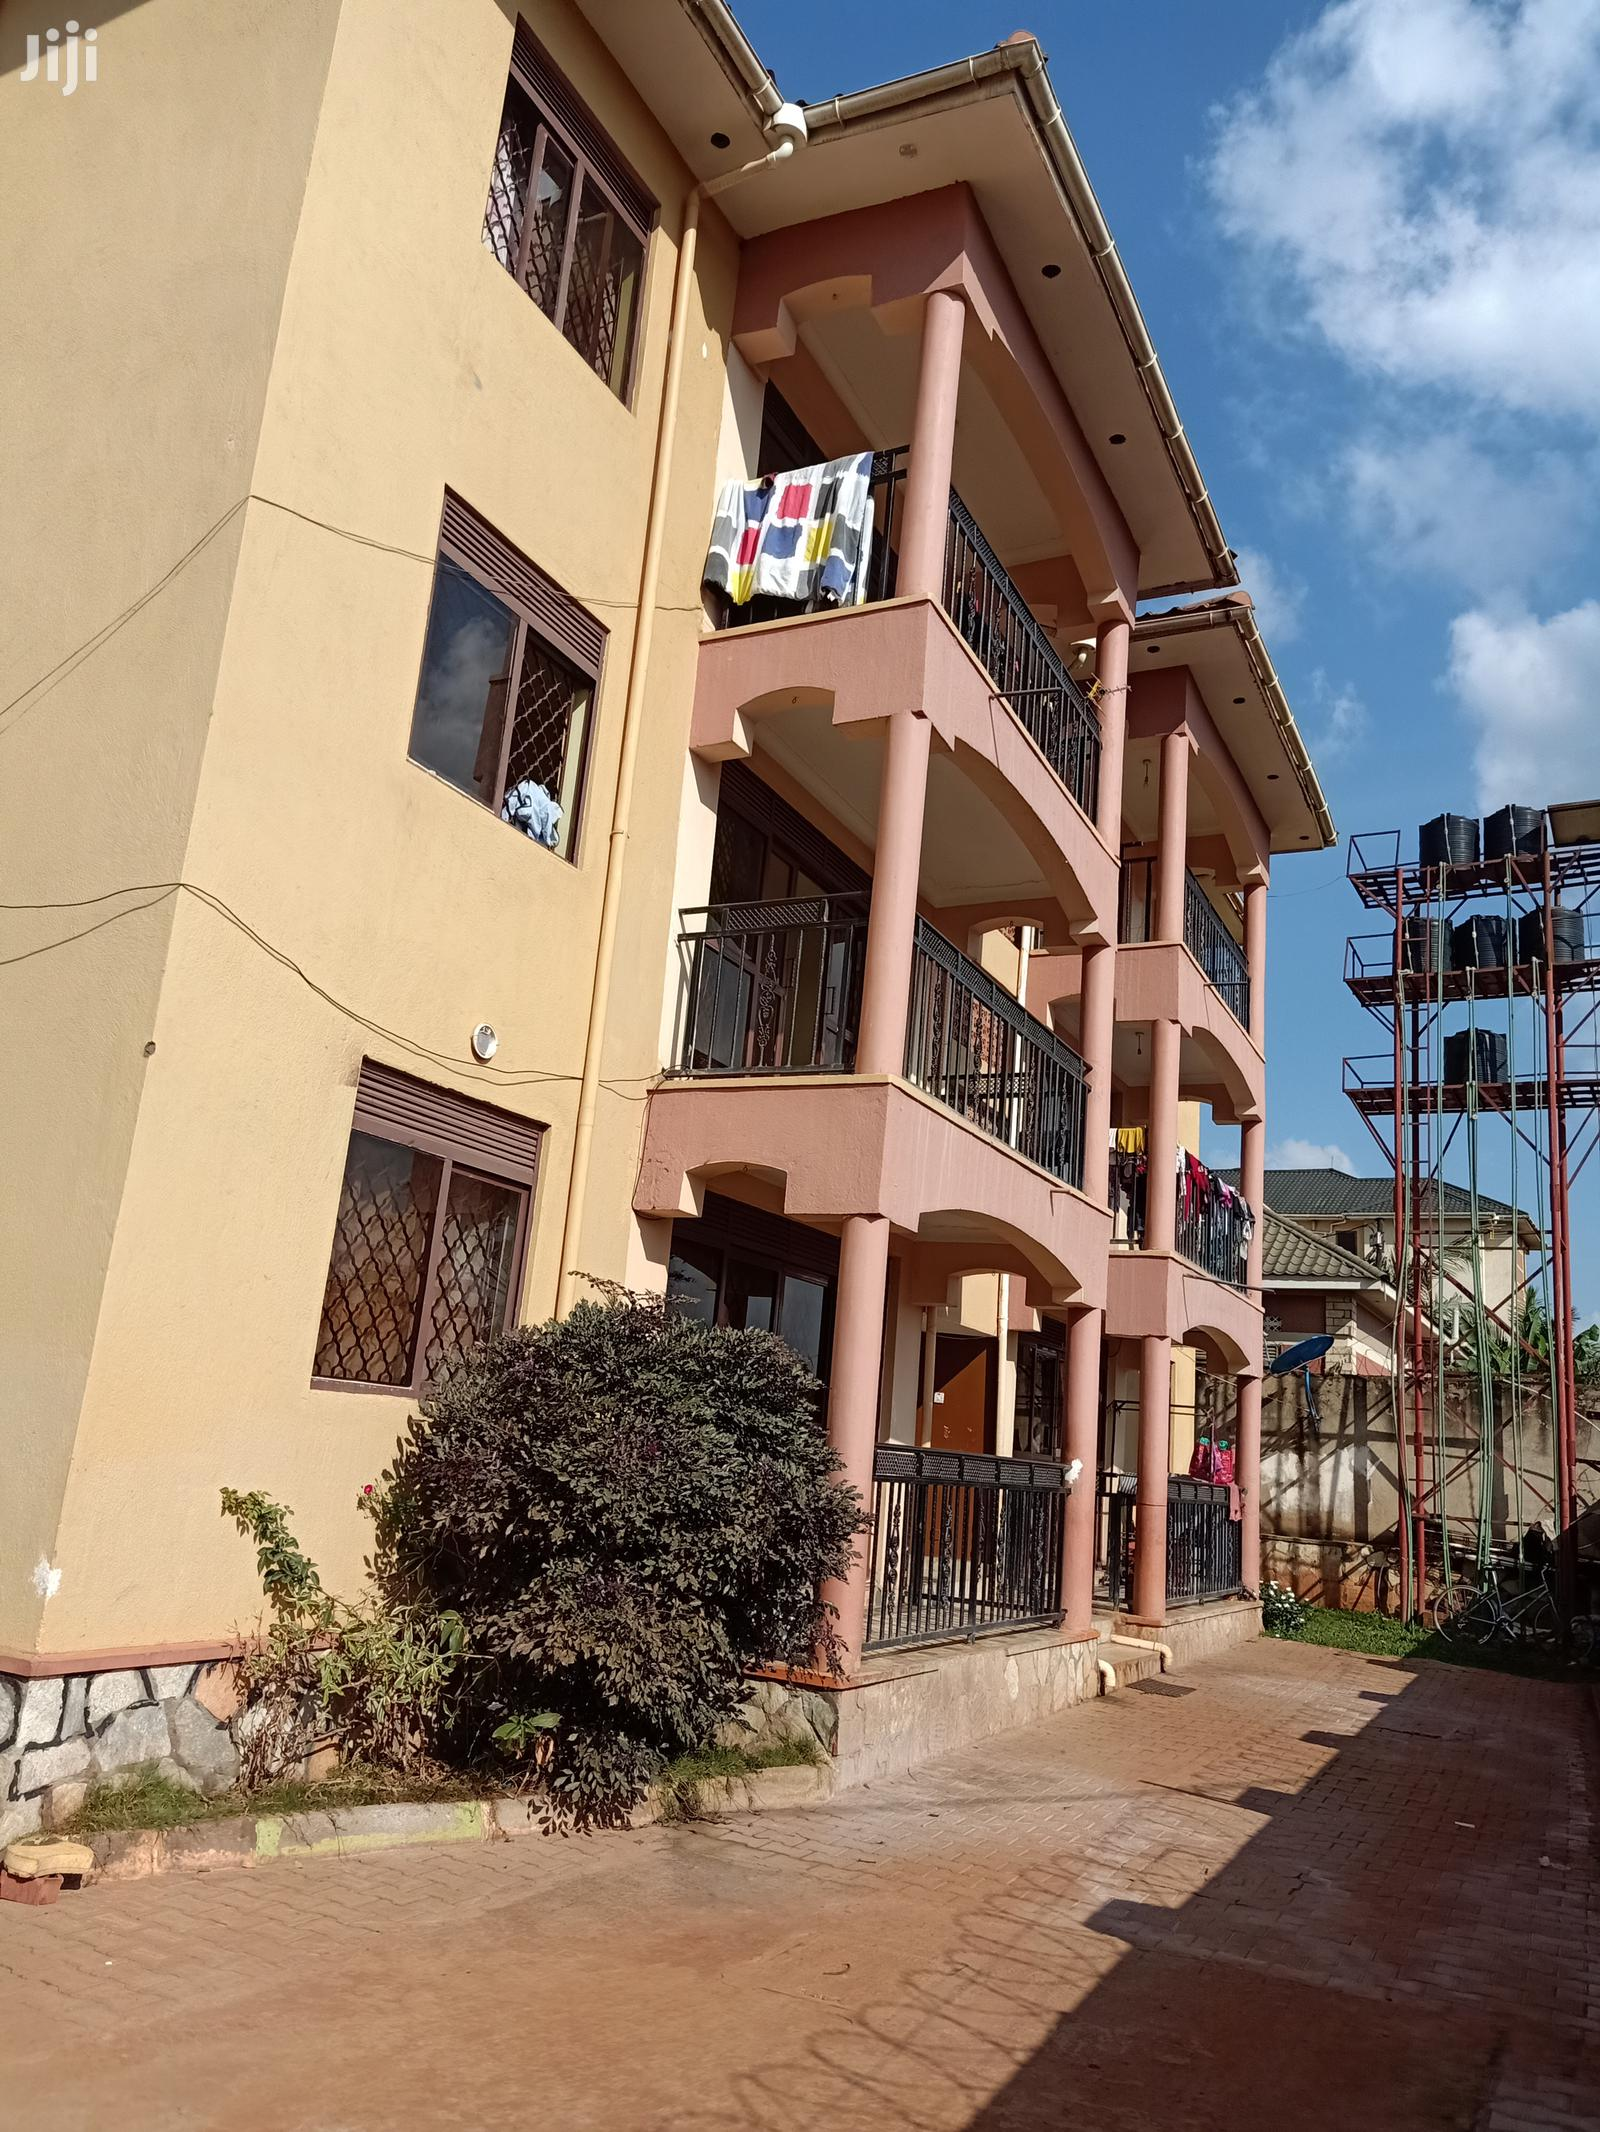 Kiira 2bedroom Apartment For Rent